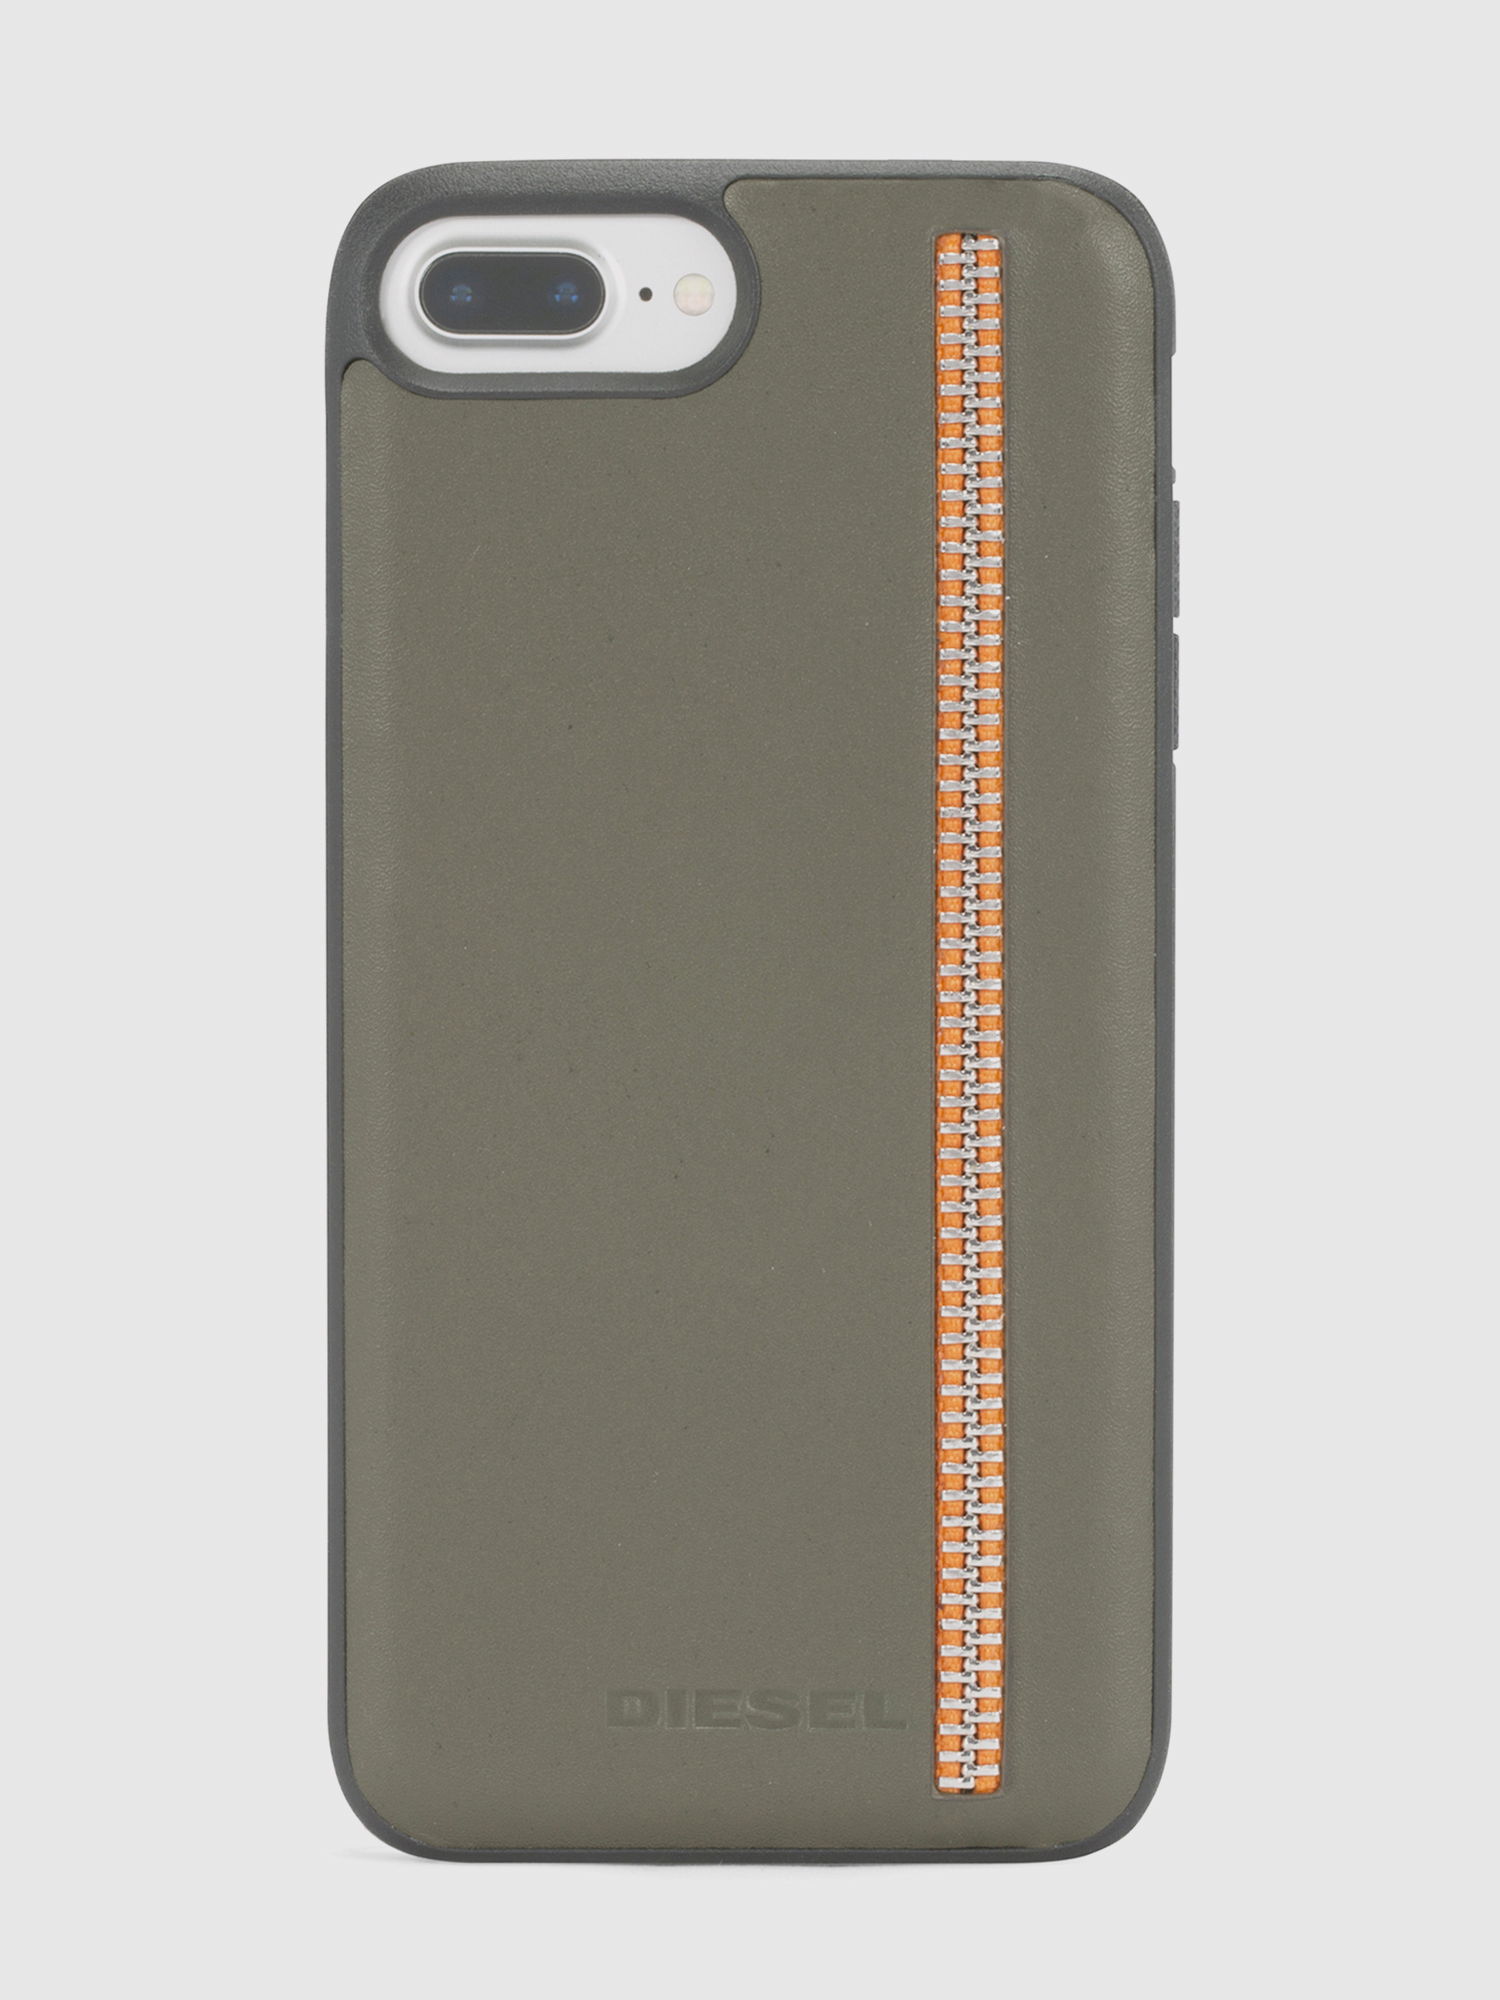 Diesel - ZIP OLIVE LEATHER IPHONE 8/7/6s/6 CASE,  - Coques - Image 2